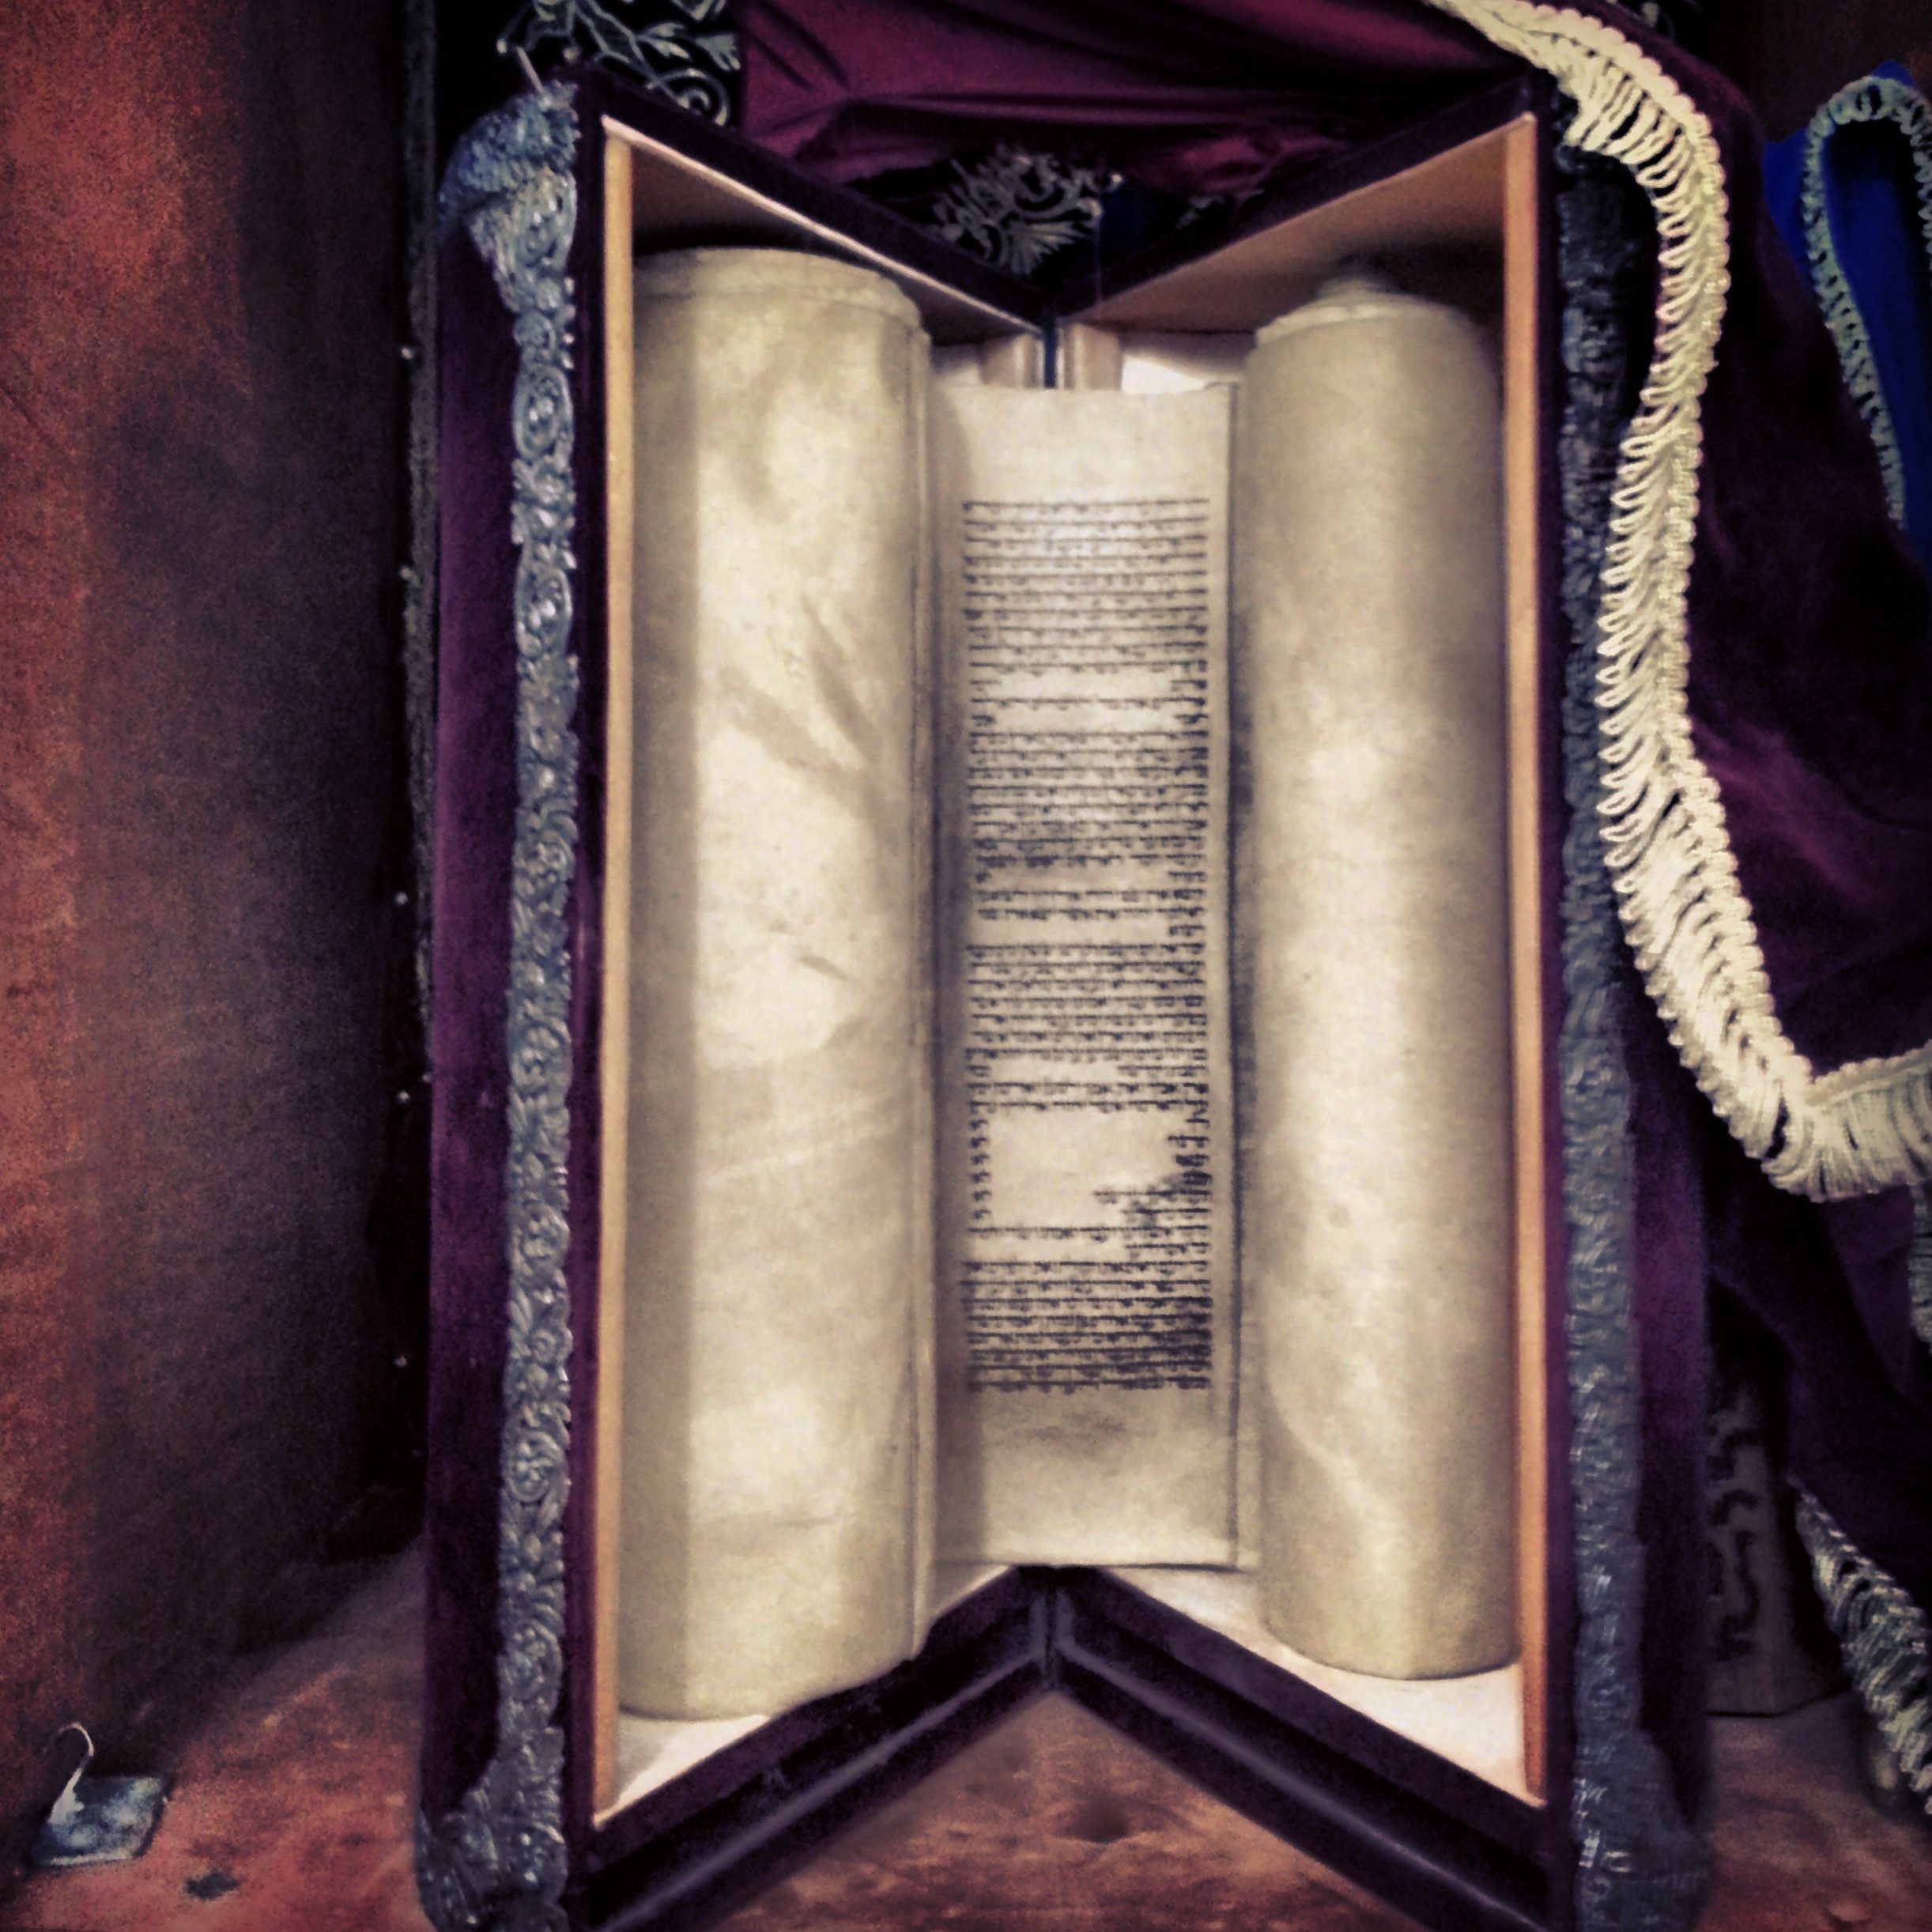 13th century Karaite Torah scroll